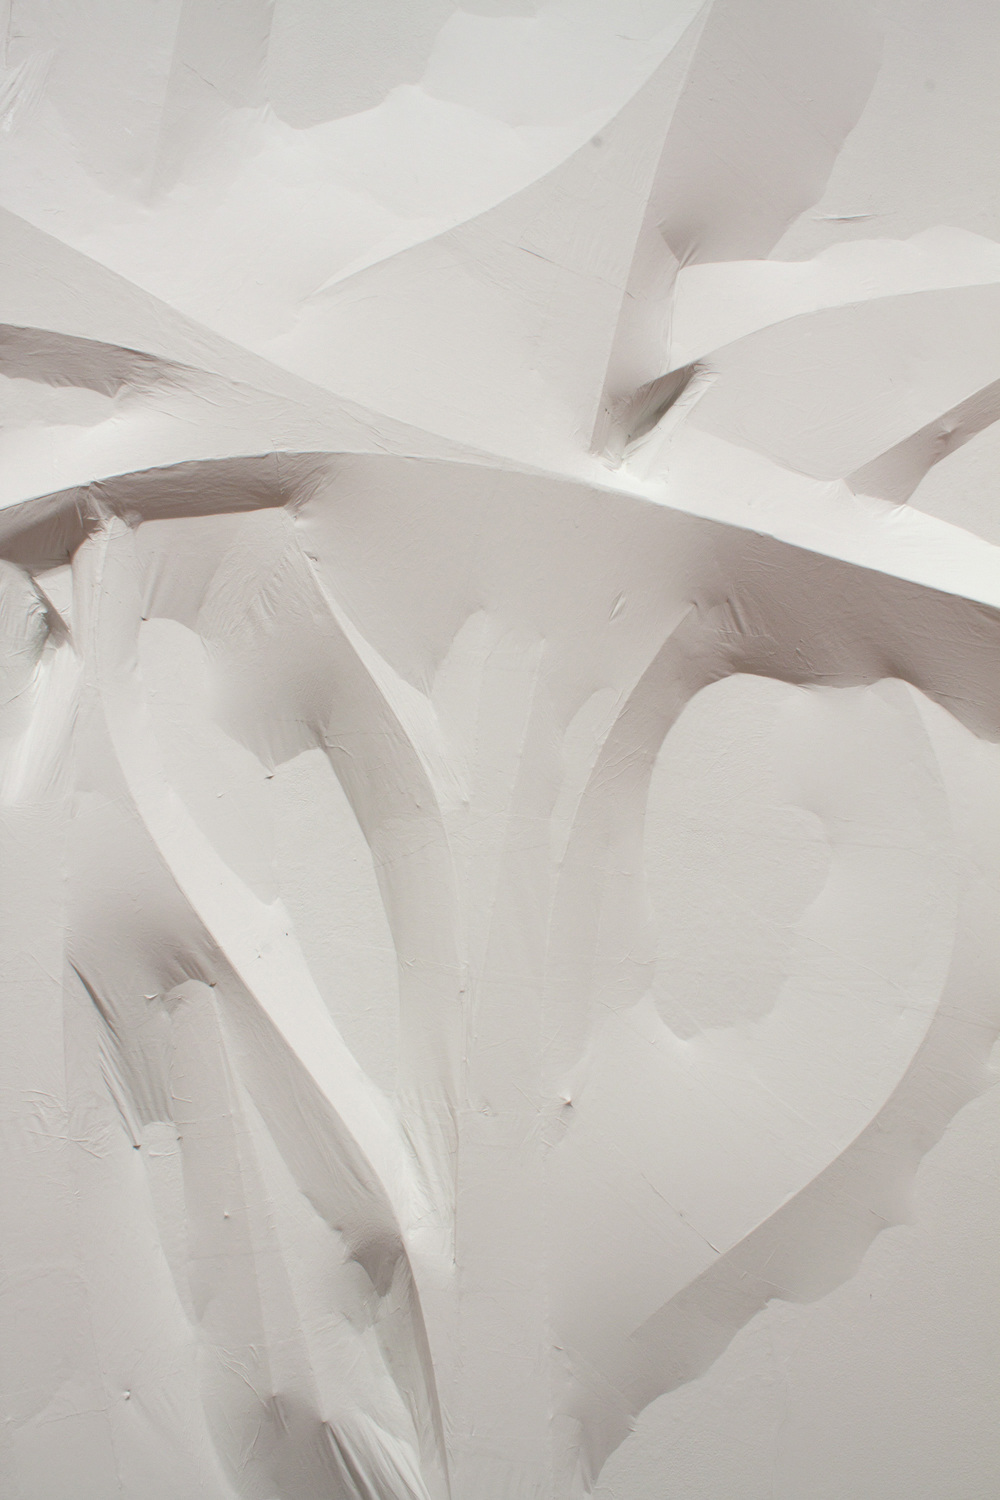 Detail  Untitled (white forms)   2011   Wood strips, tracing paper, latex paint  Approx. 144 x 216 x 3 in.